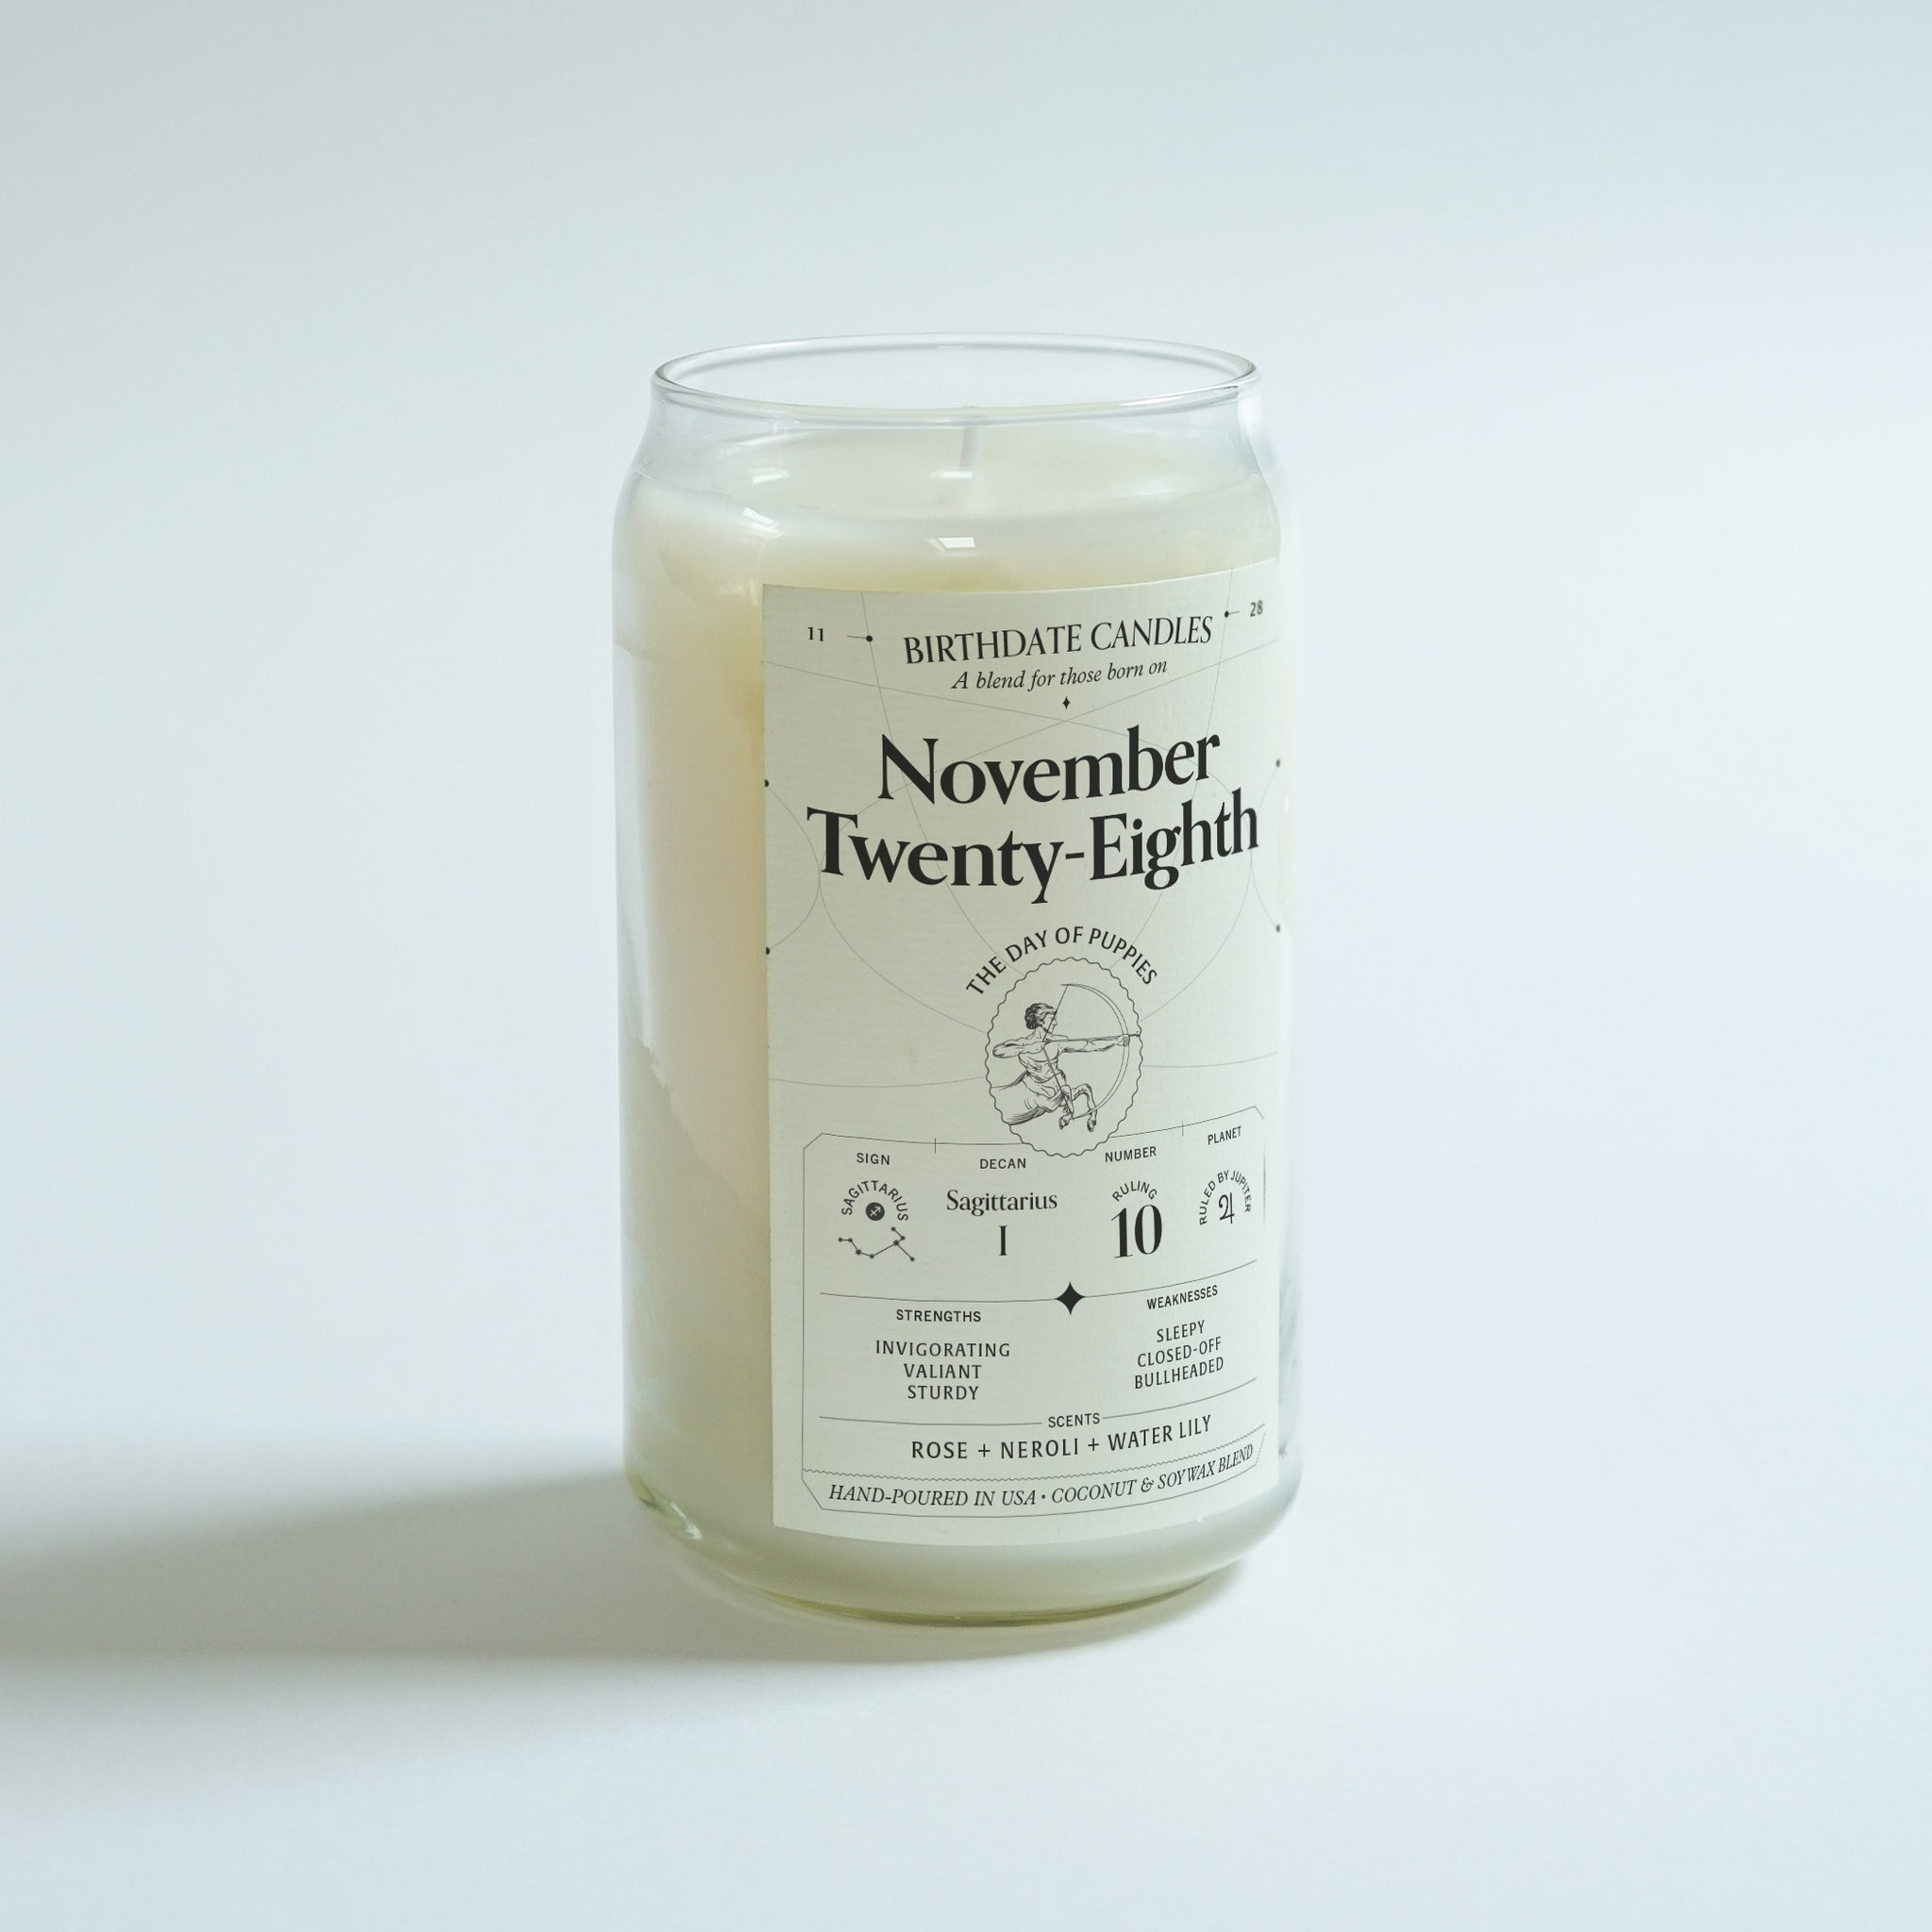 The November Twenty-Eighth Birthday Candle